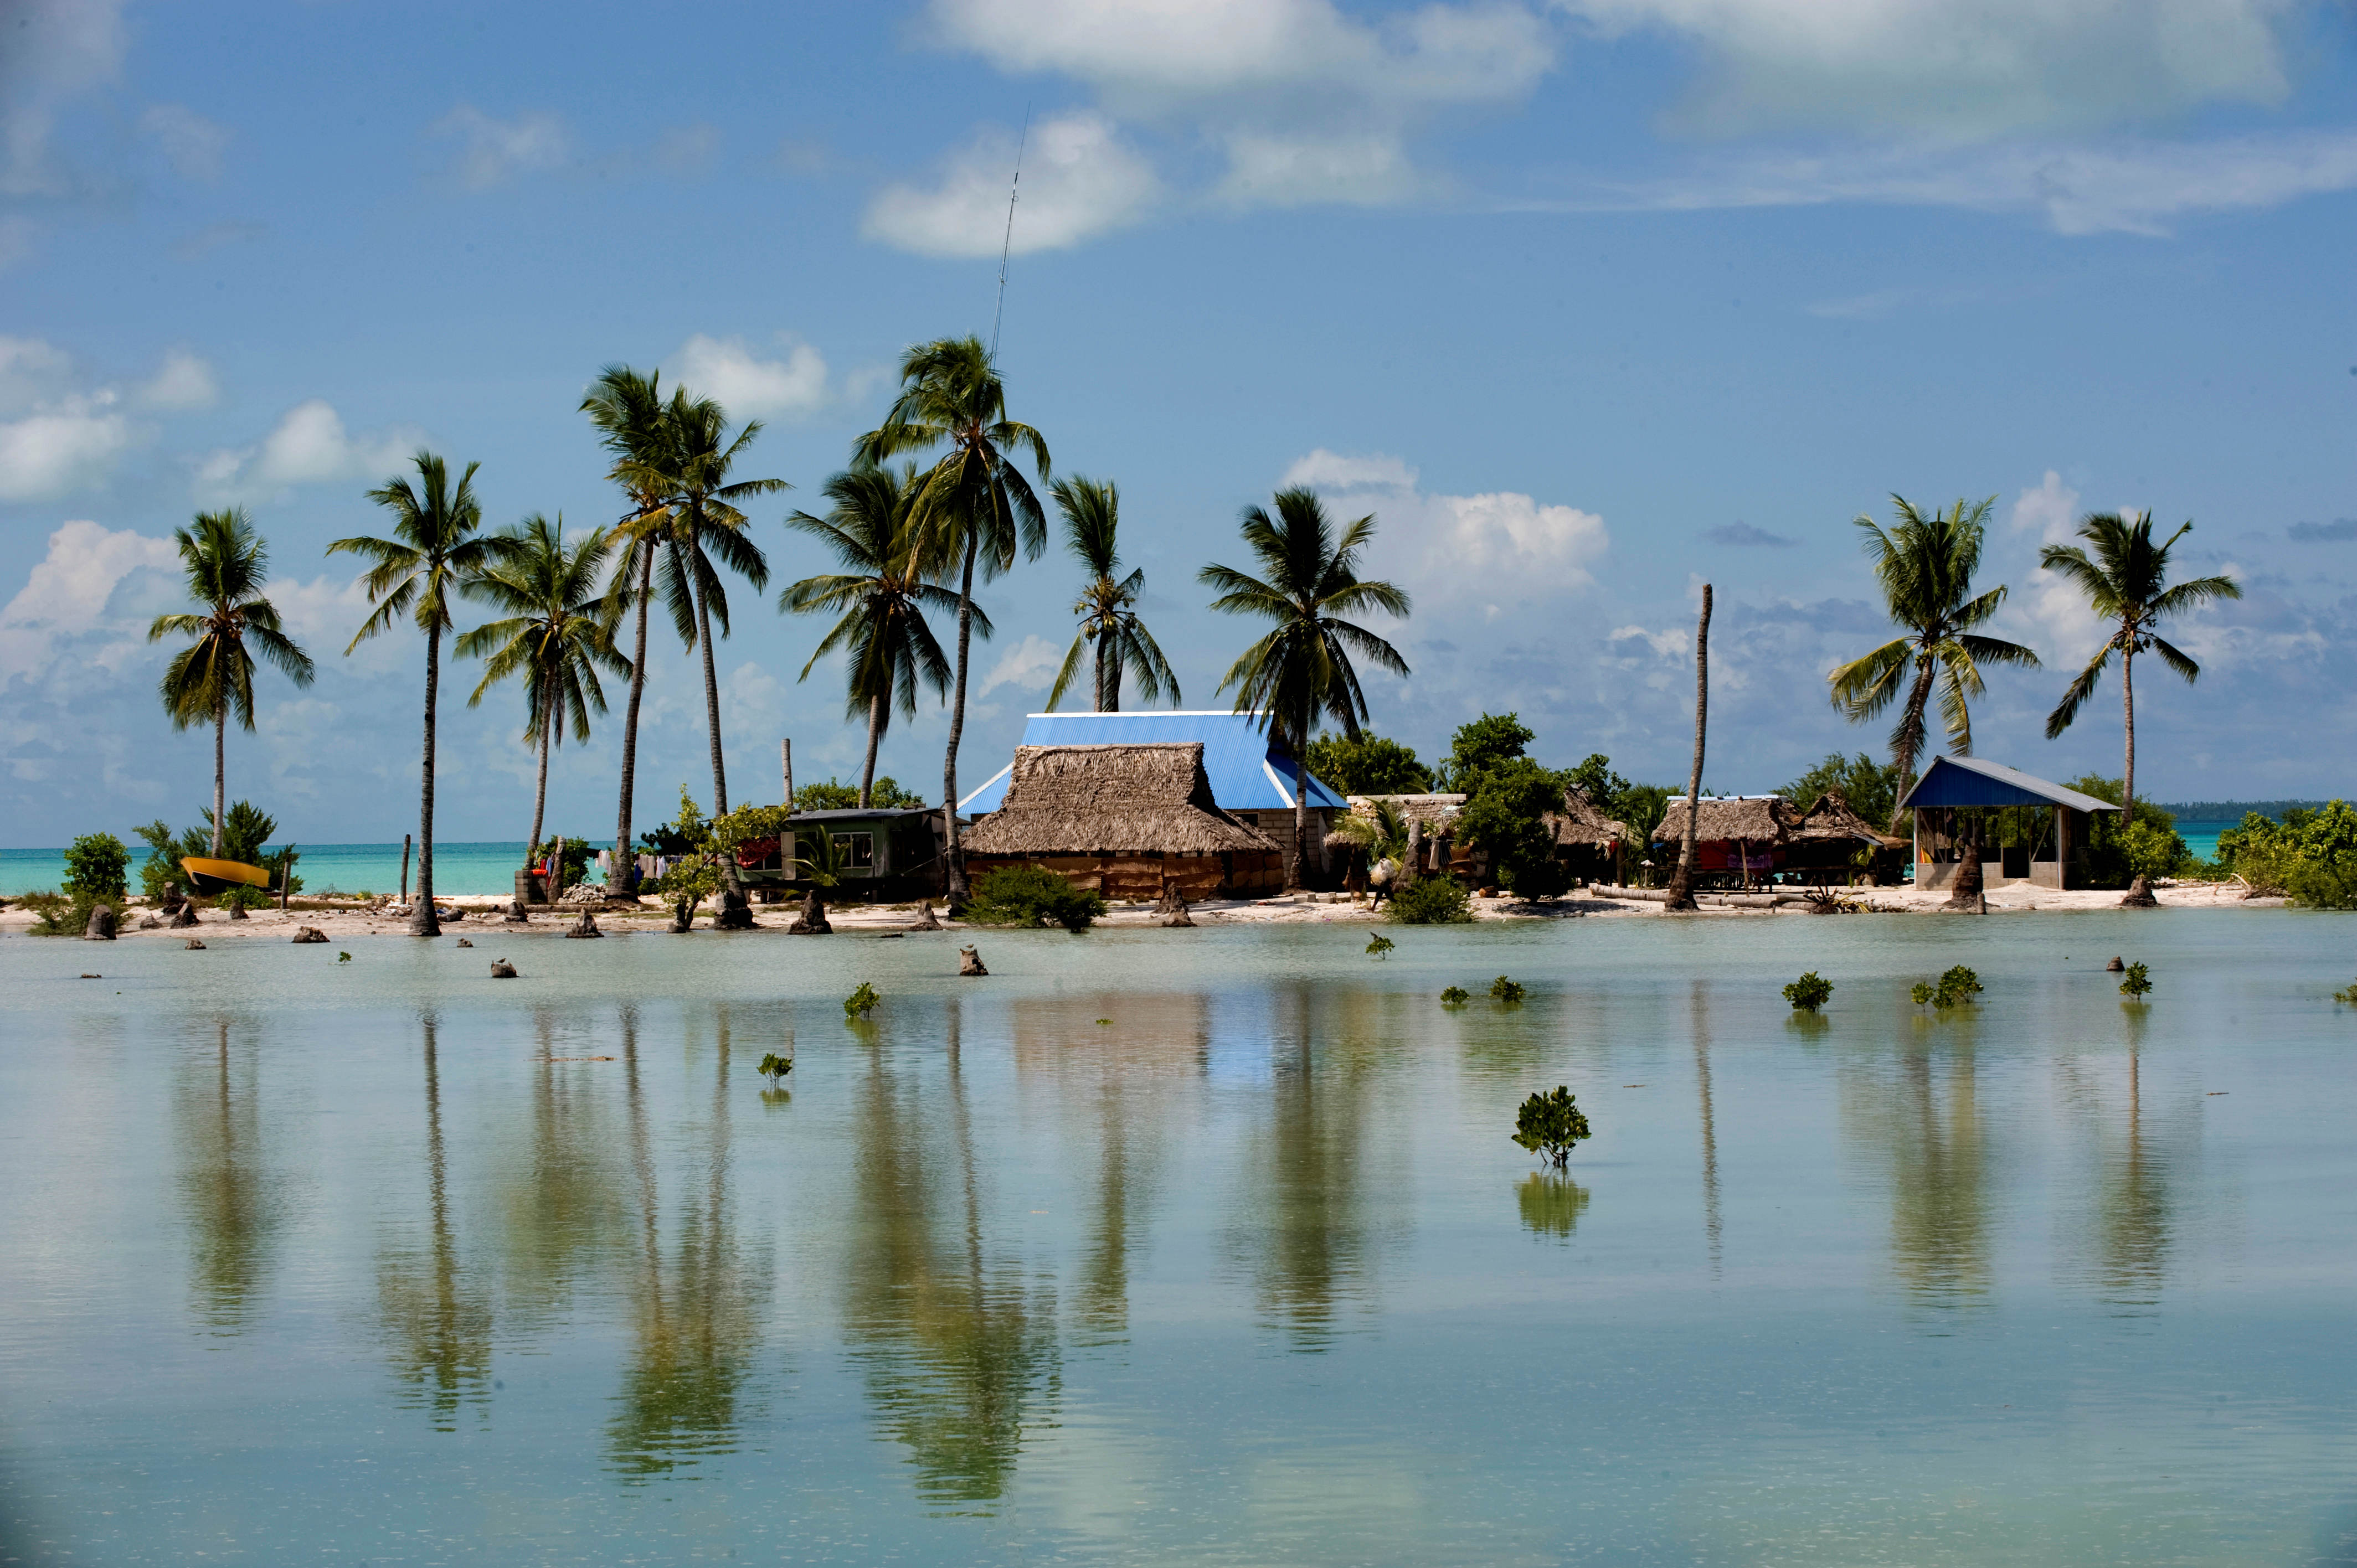 Pacific islanders plead for urgent climate action as seas rise